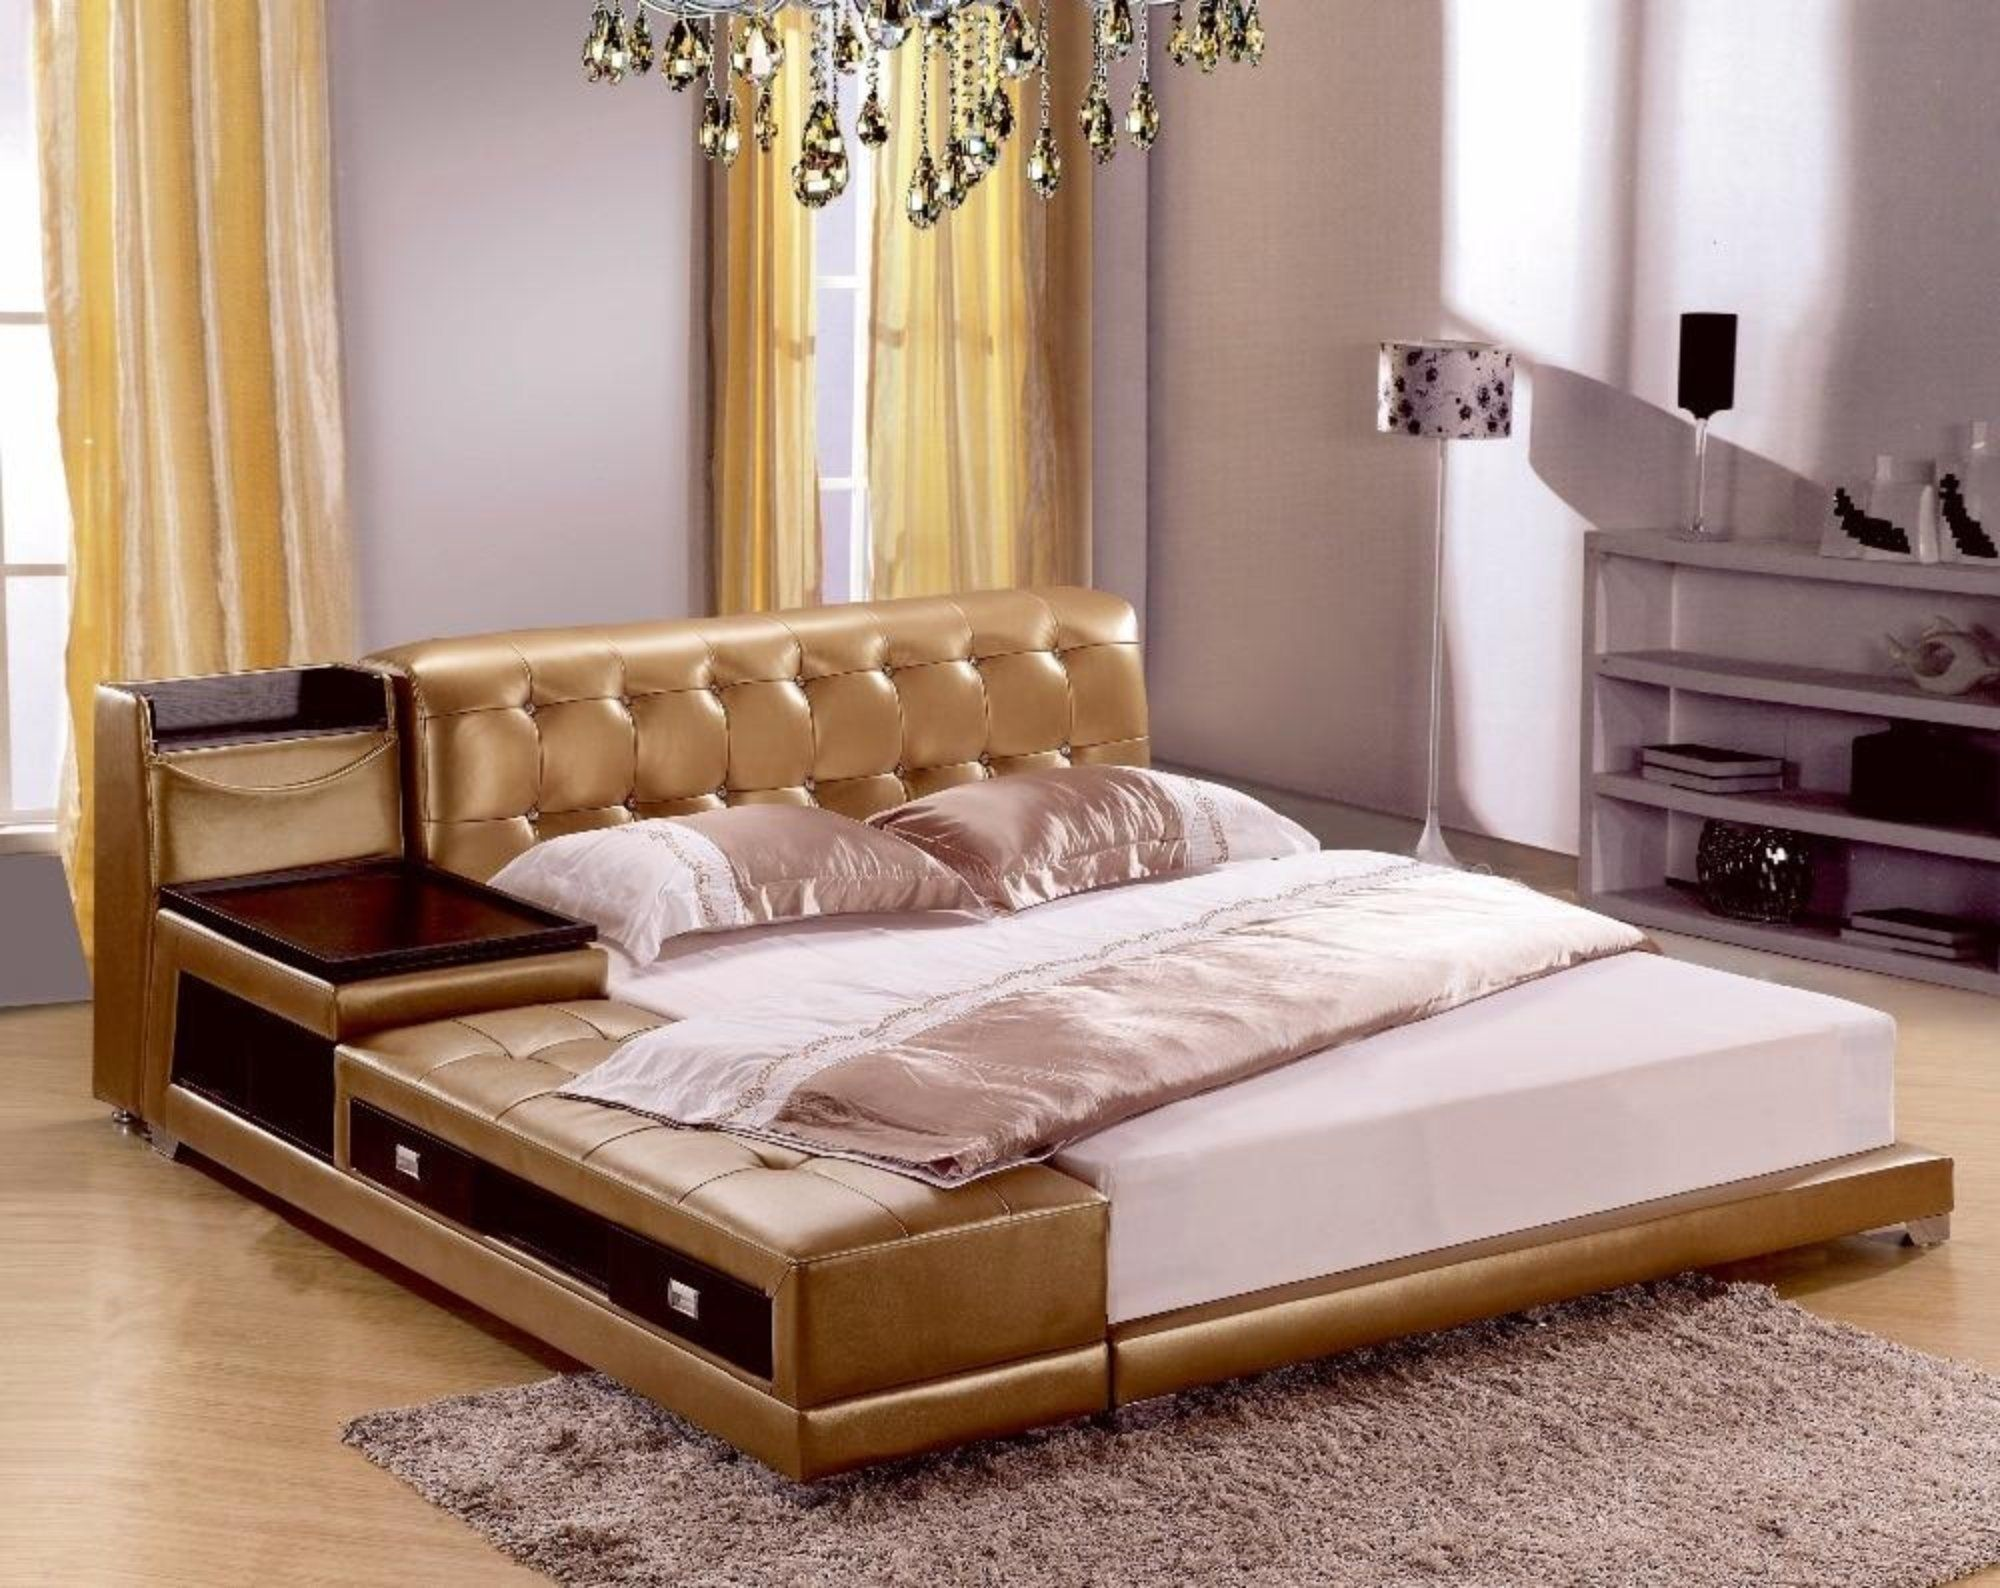 Best Modern Genuine Leather Bed With Storage Box And Sideboard 400 x 300